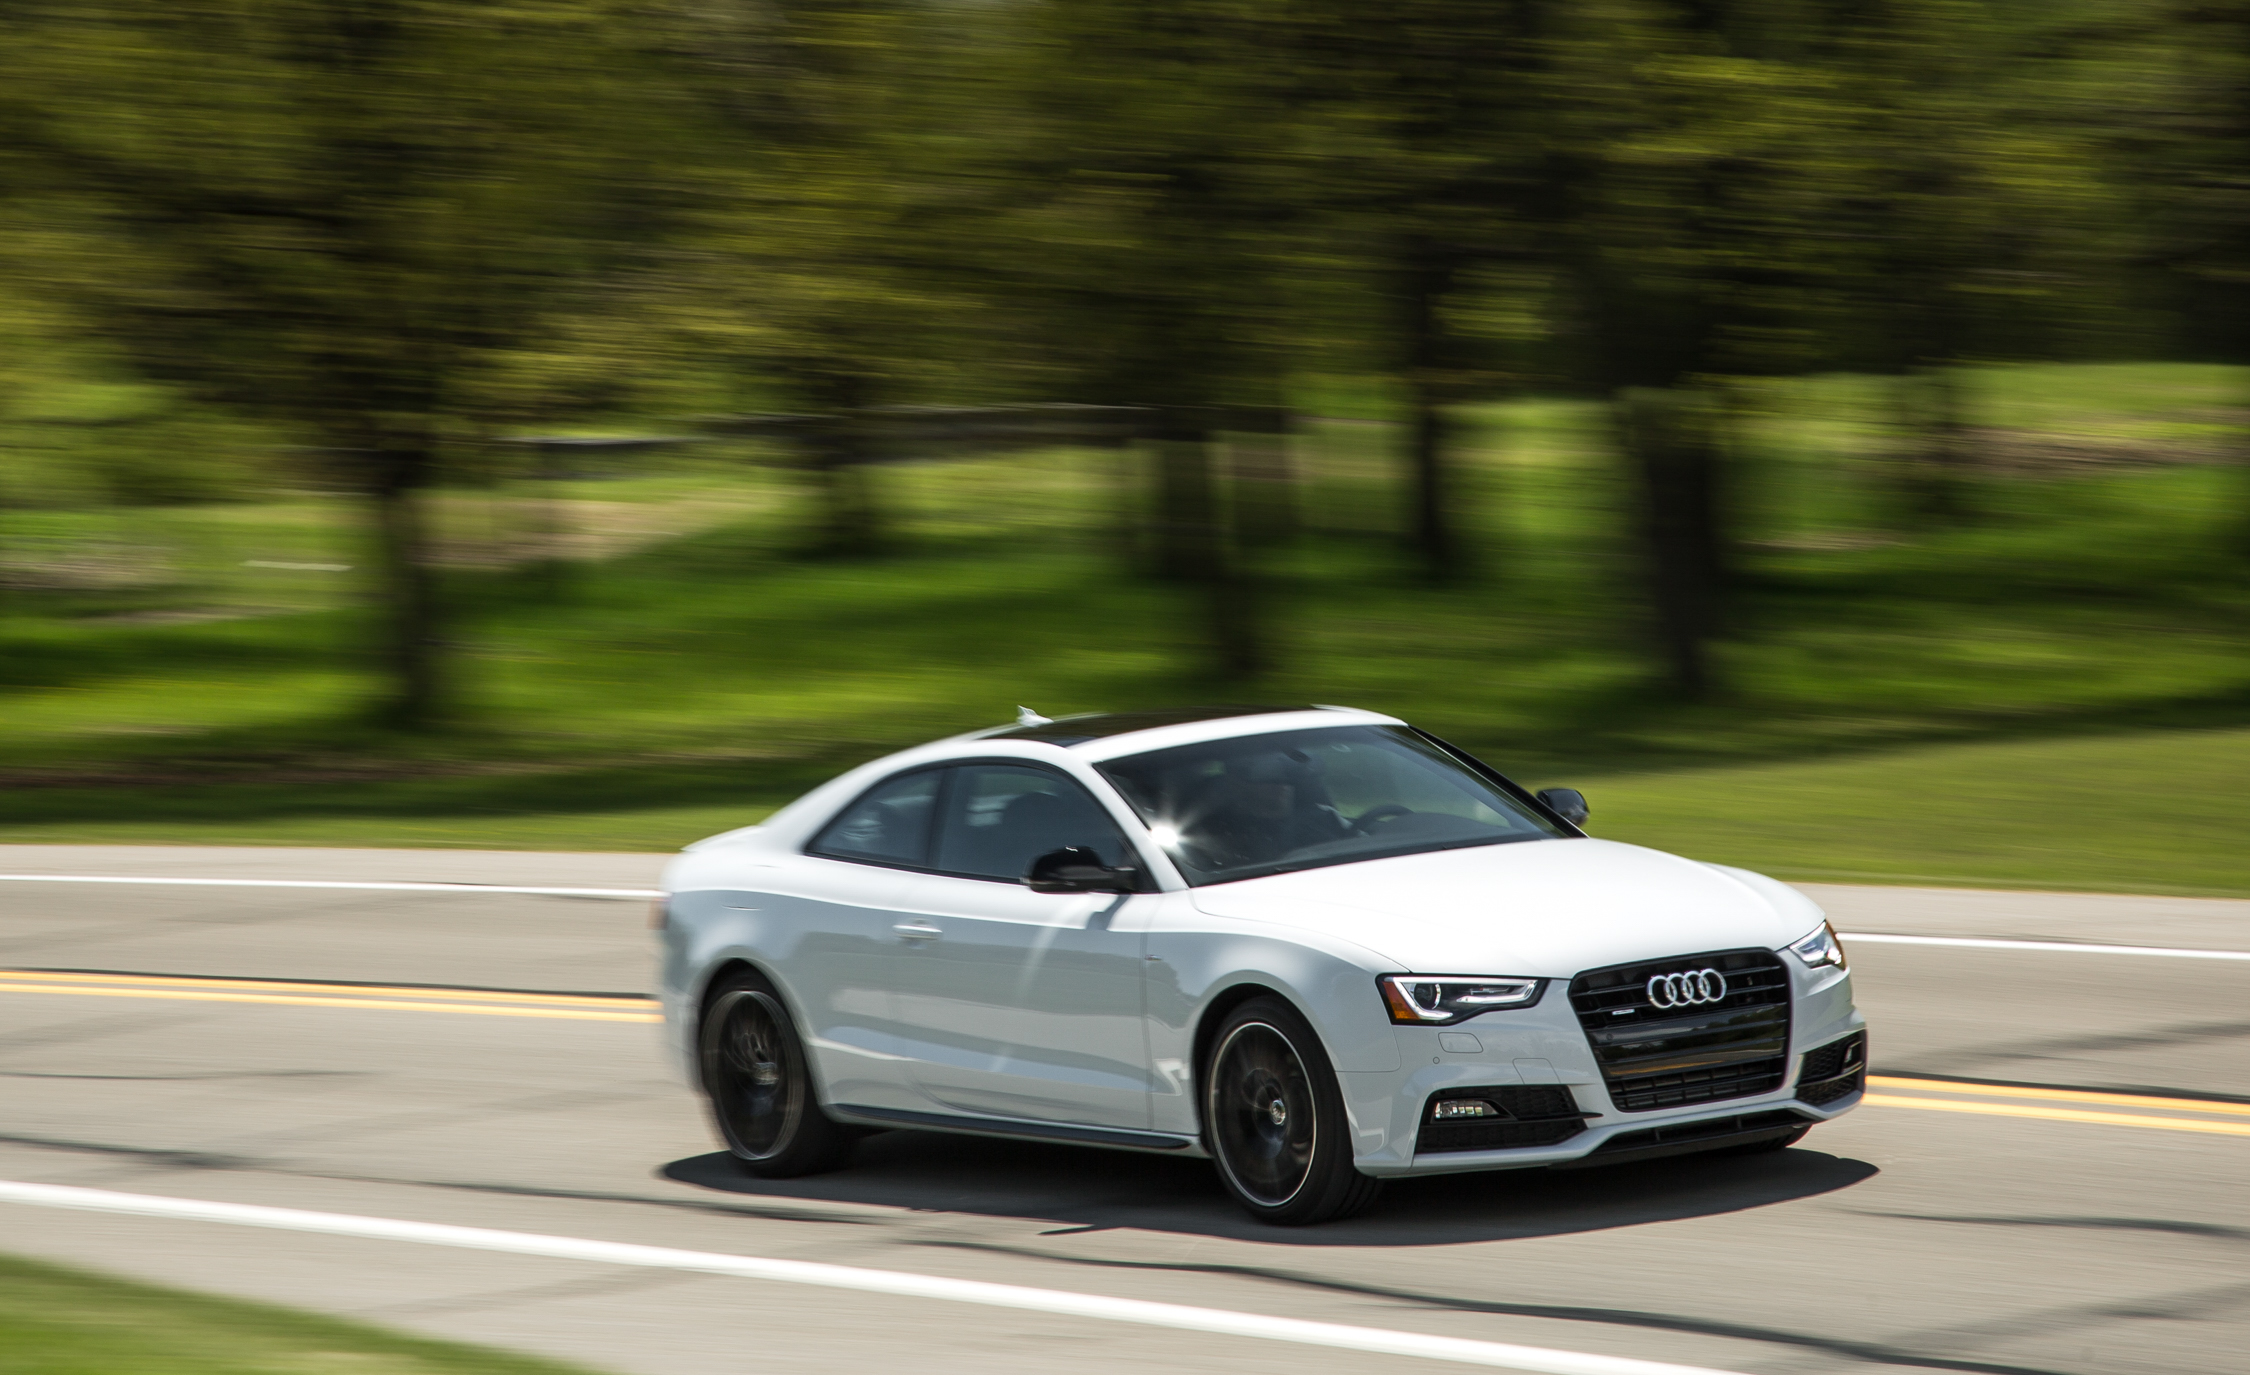 2016 Audi A5 S Line (View 22 of 22)